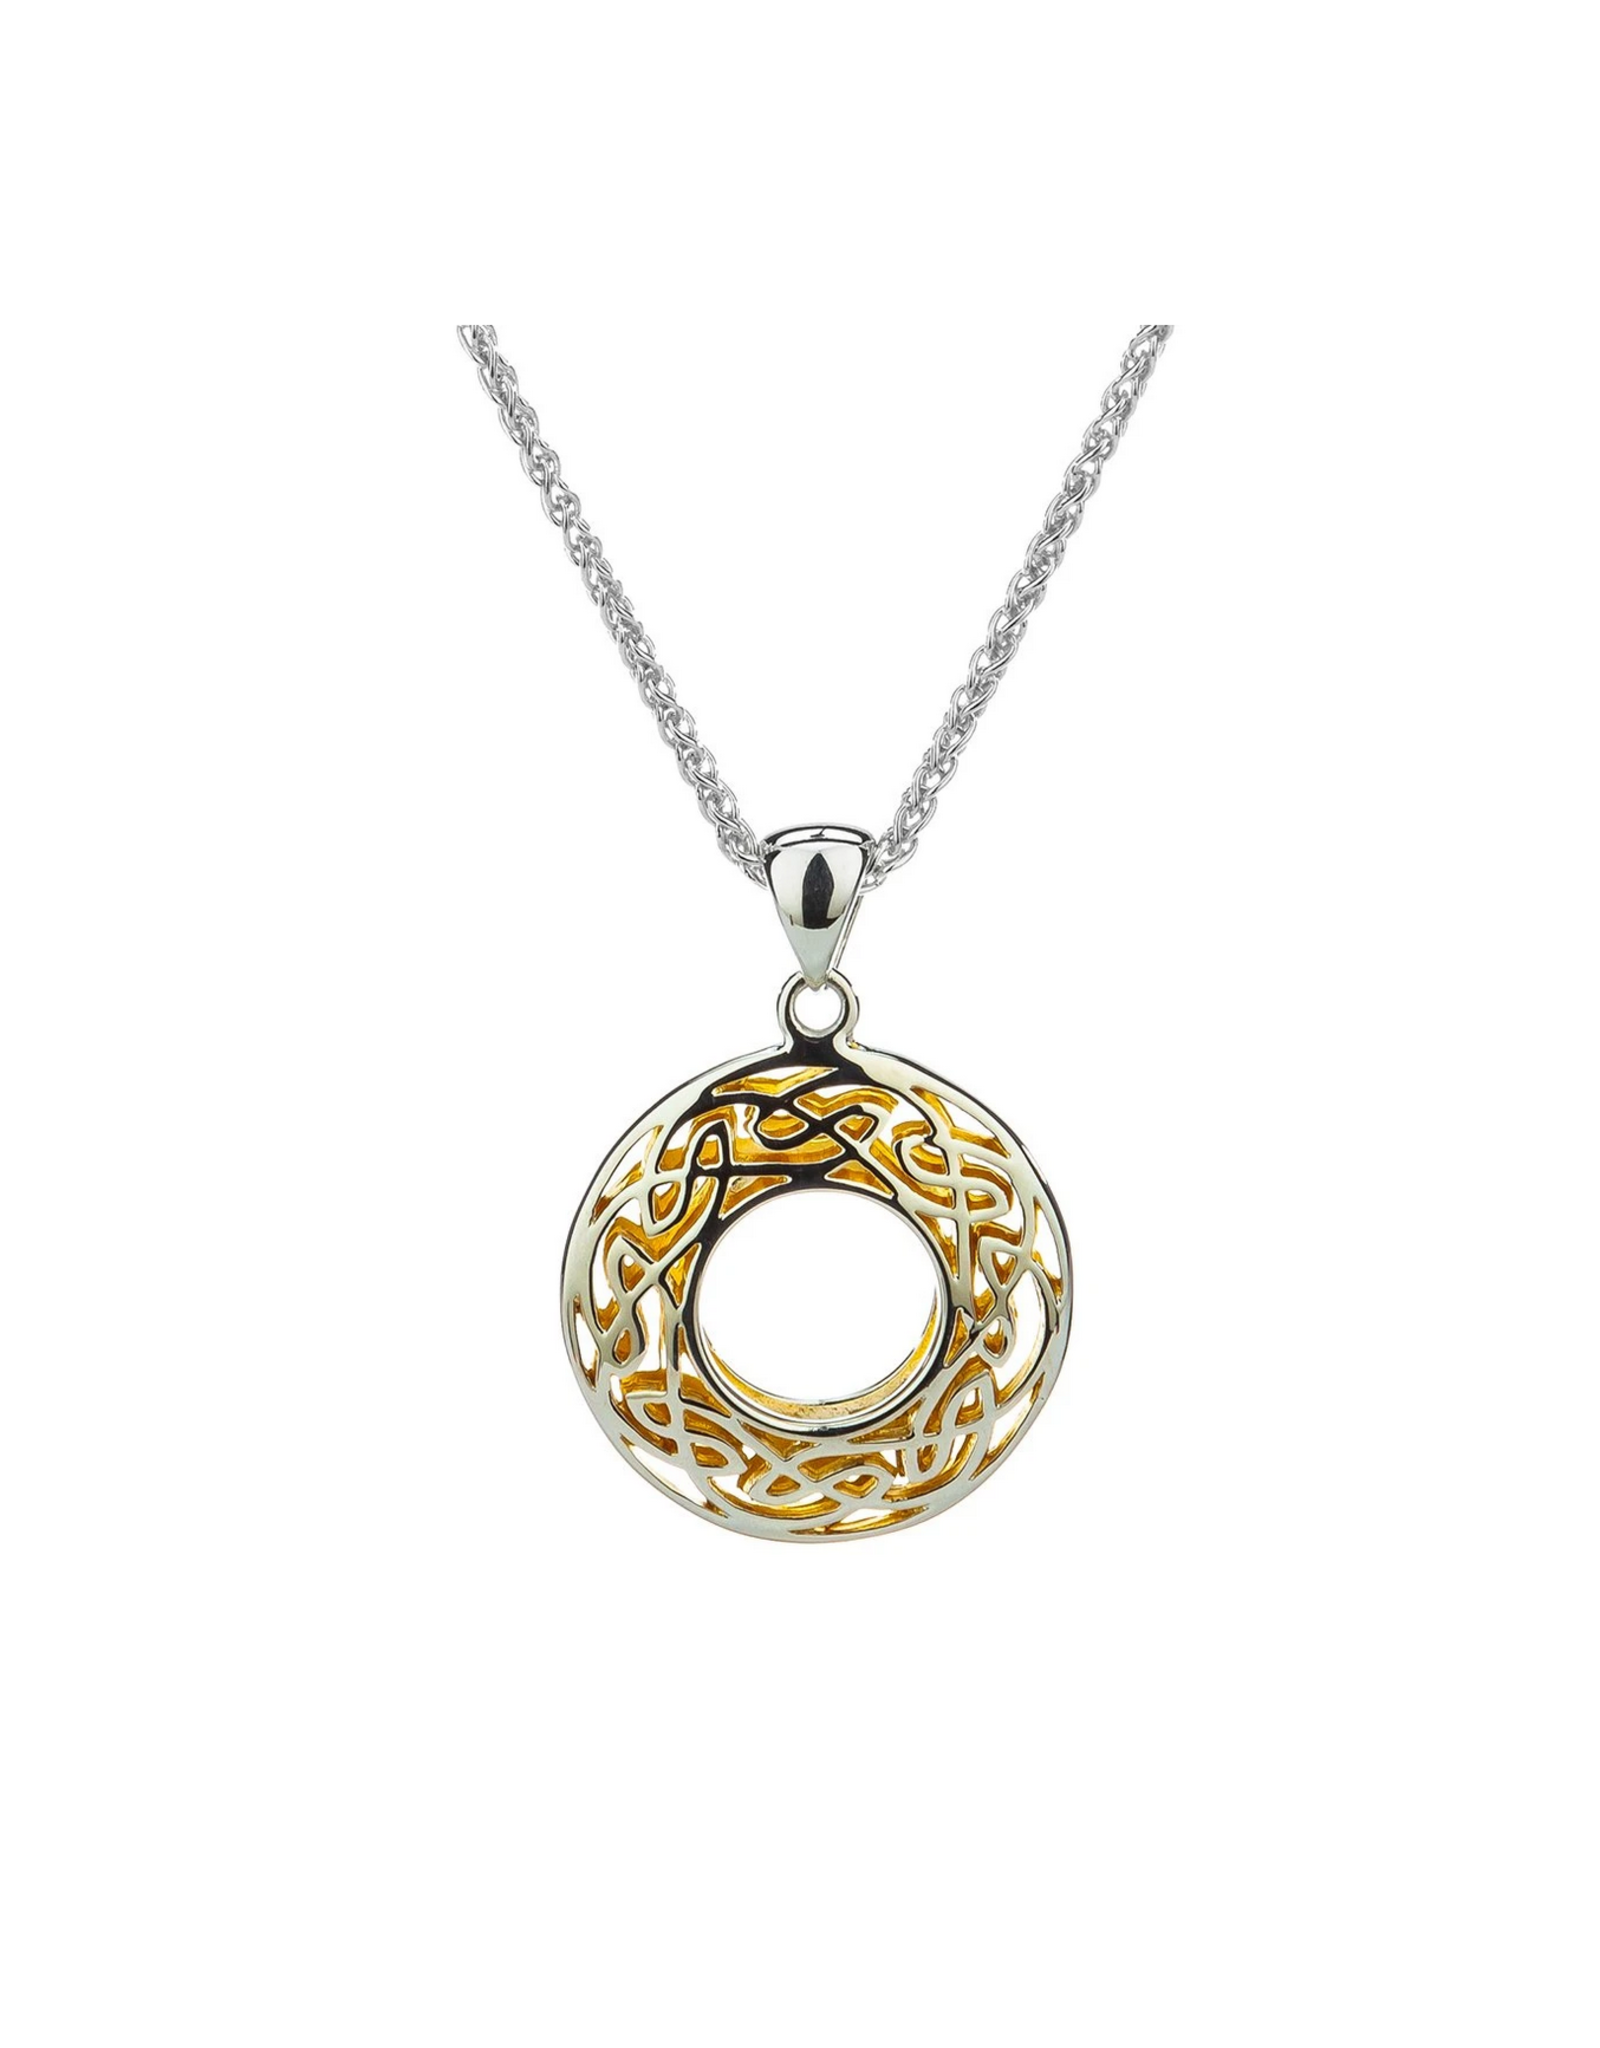 Keith Jack Silver + 22k Window to the Soul Necklace - Small